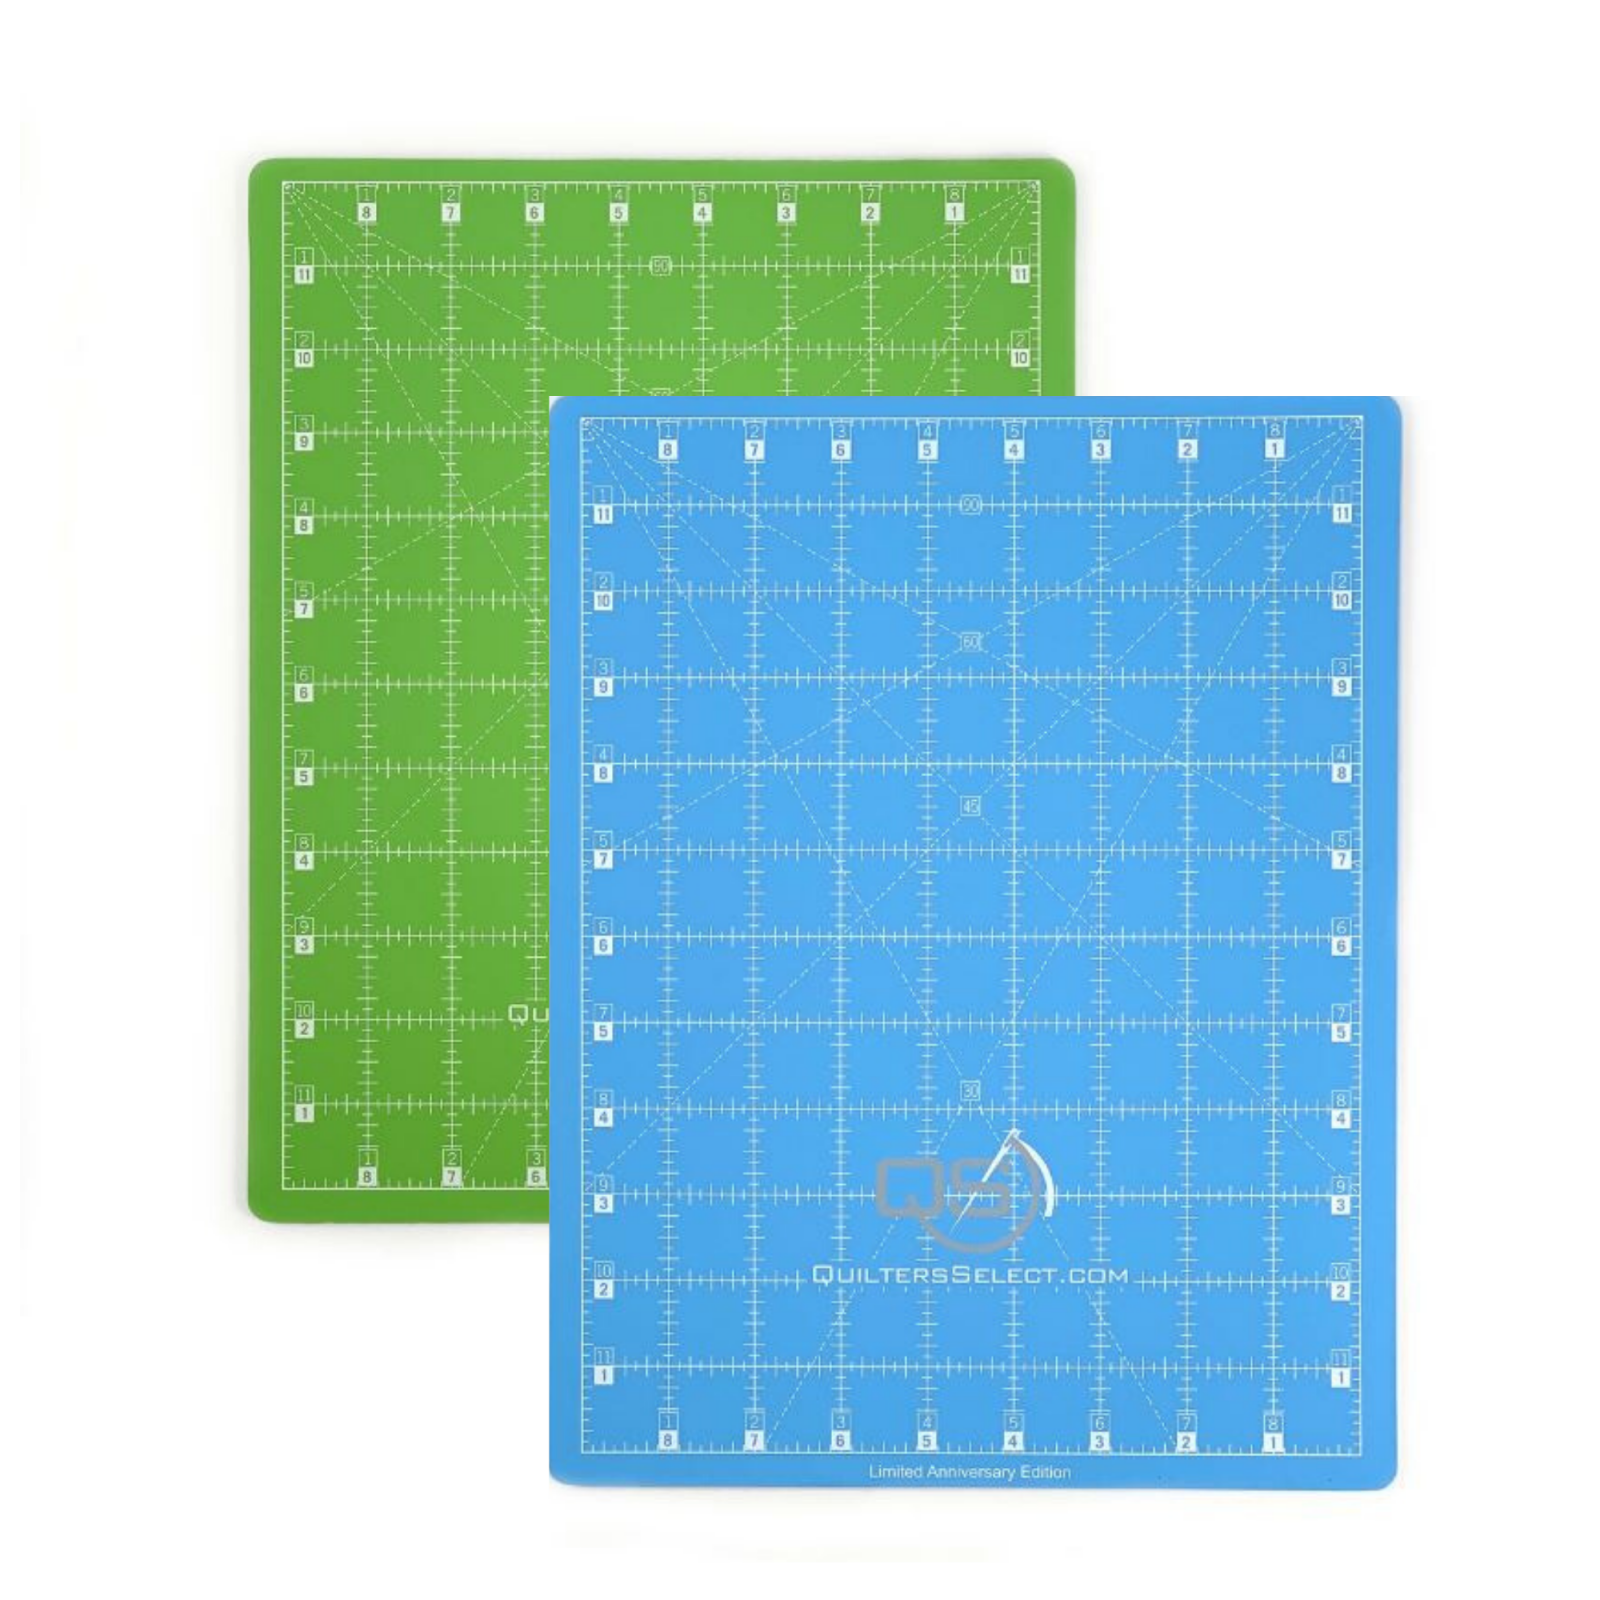 Quilter's Select 9 x 12 cutting mat